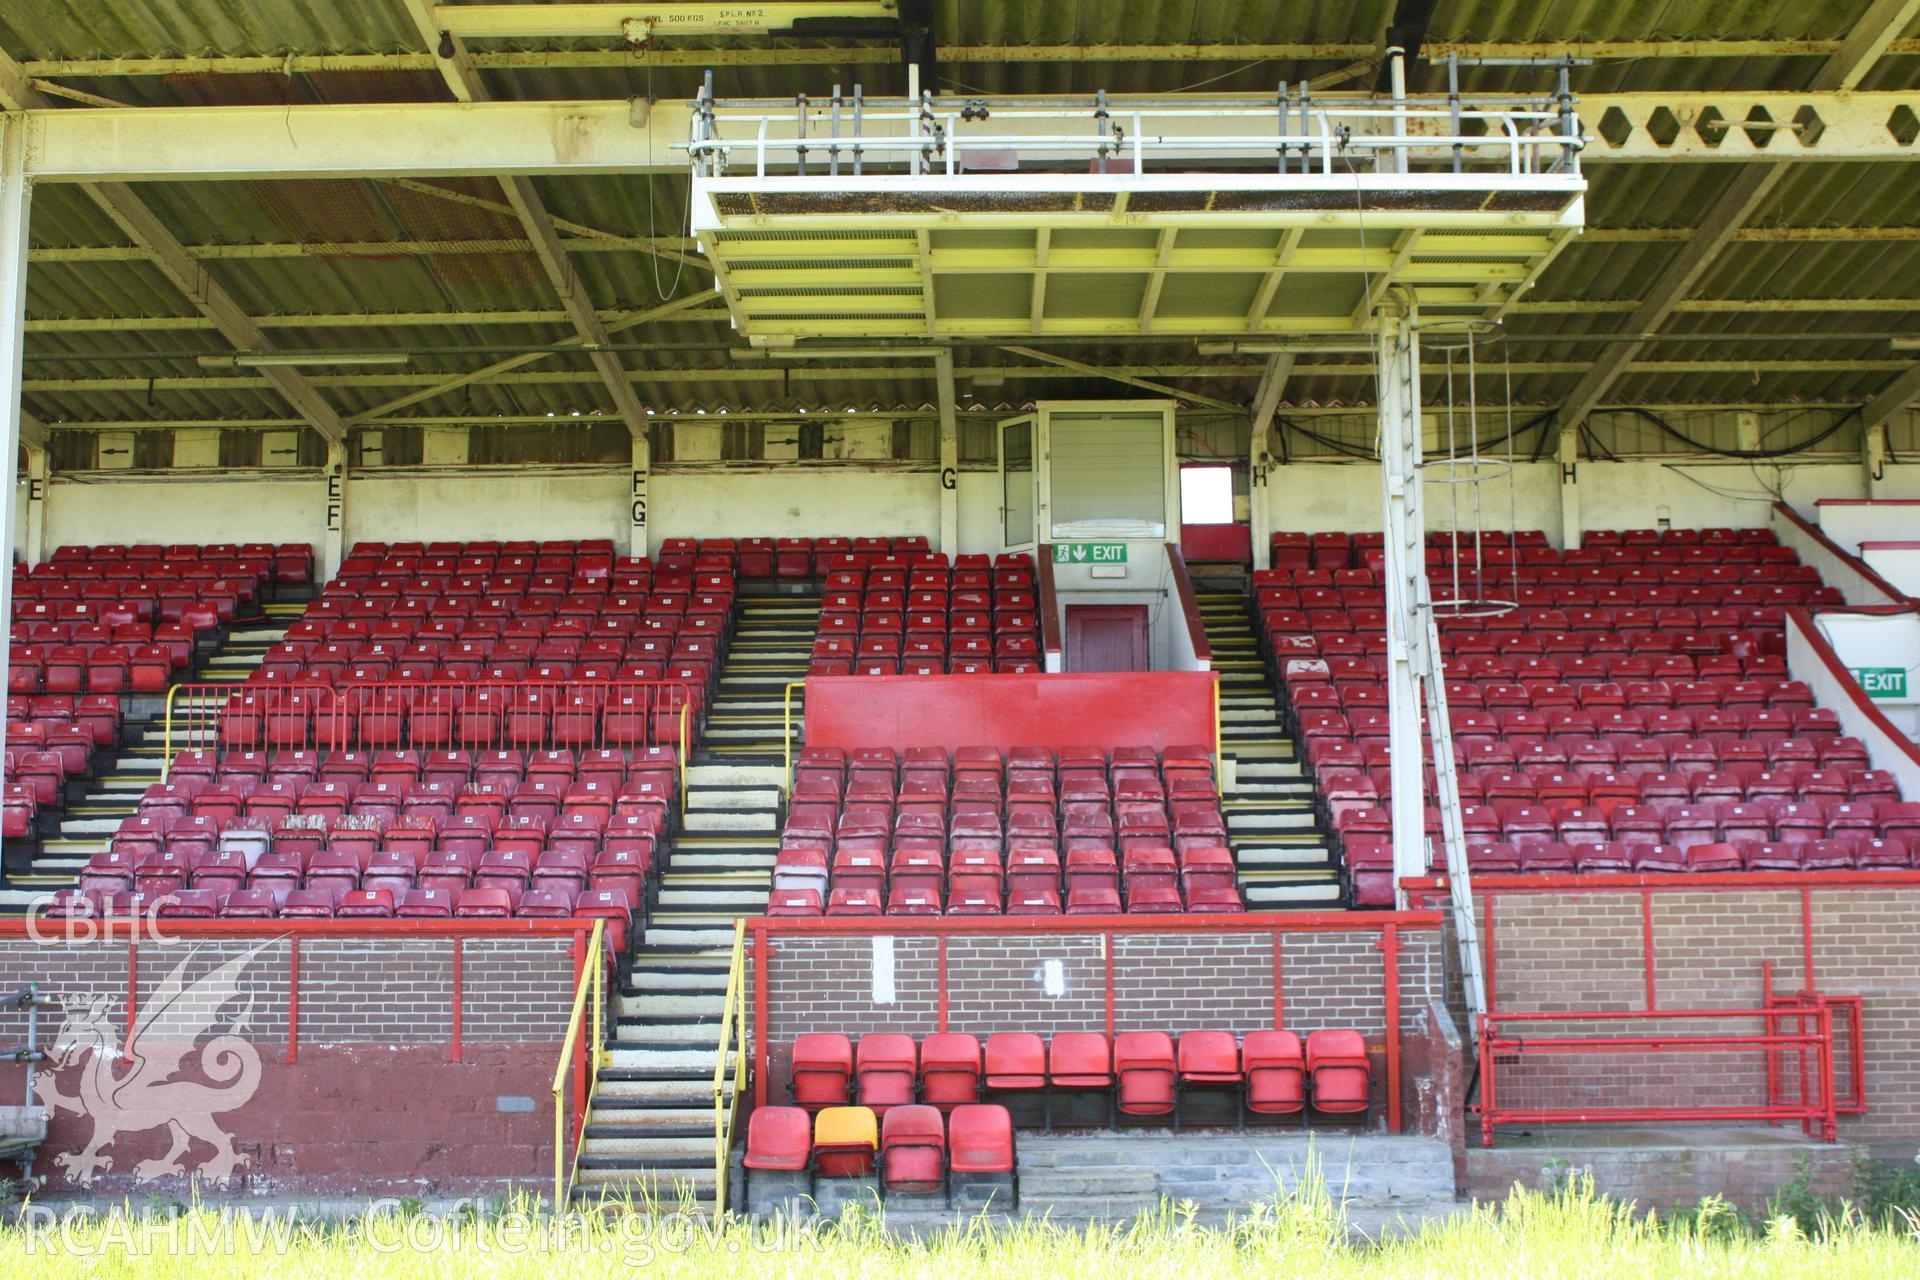 Grand (South) Stand, seating areas E-H